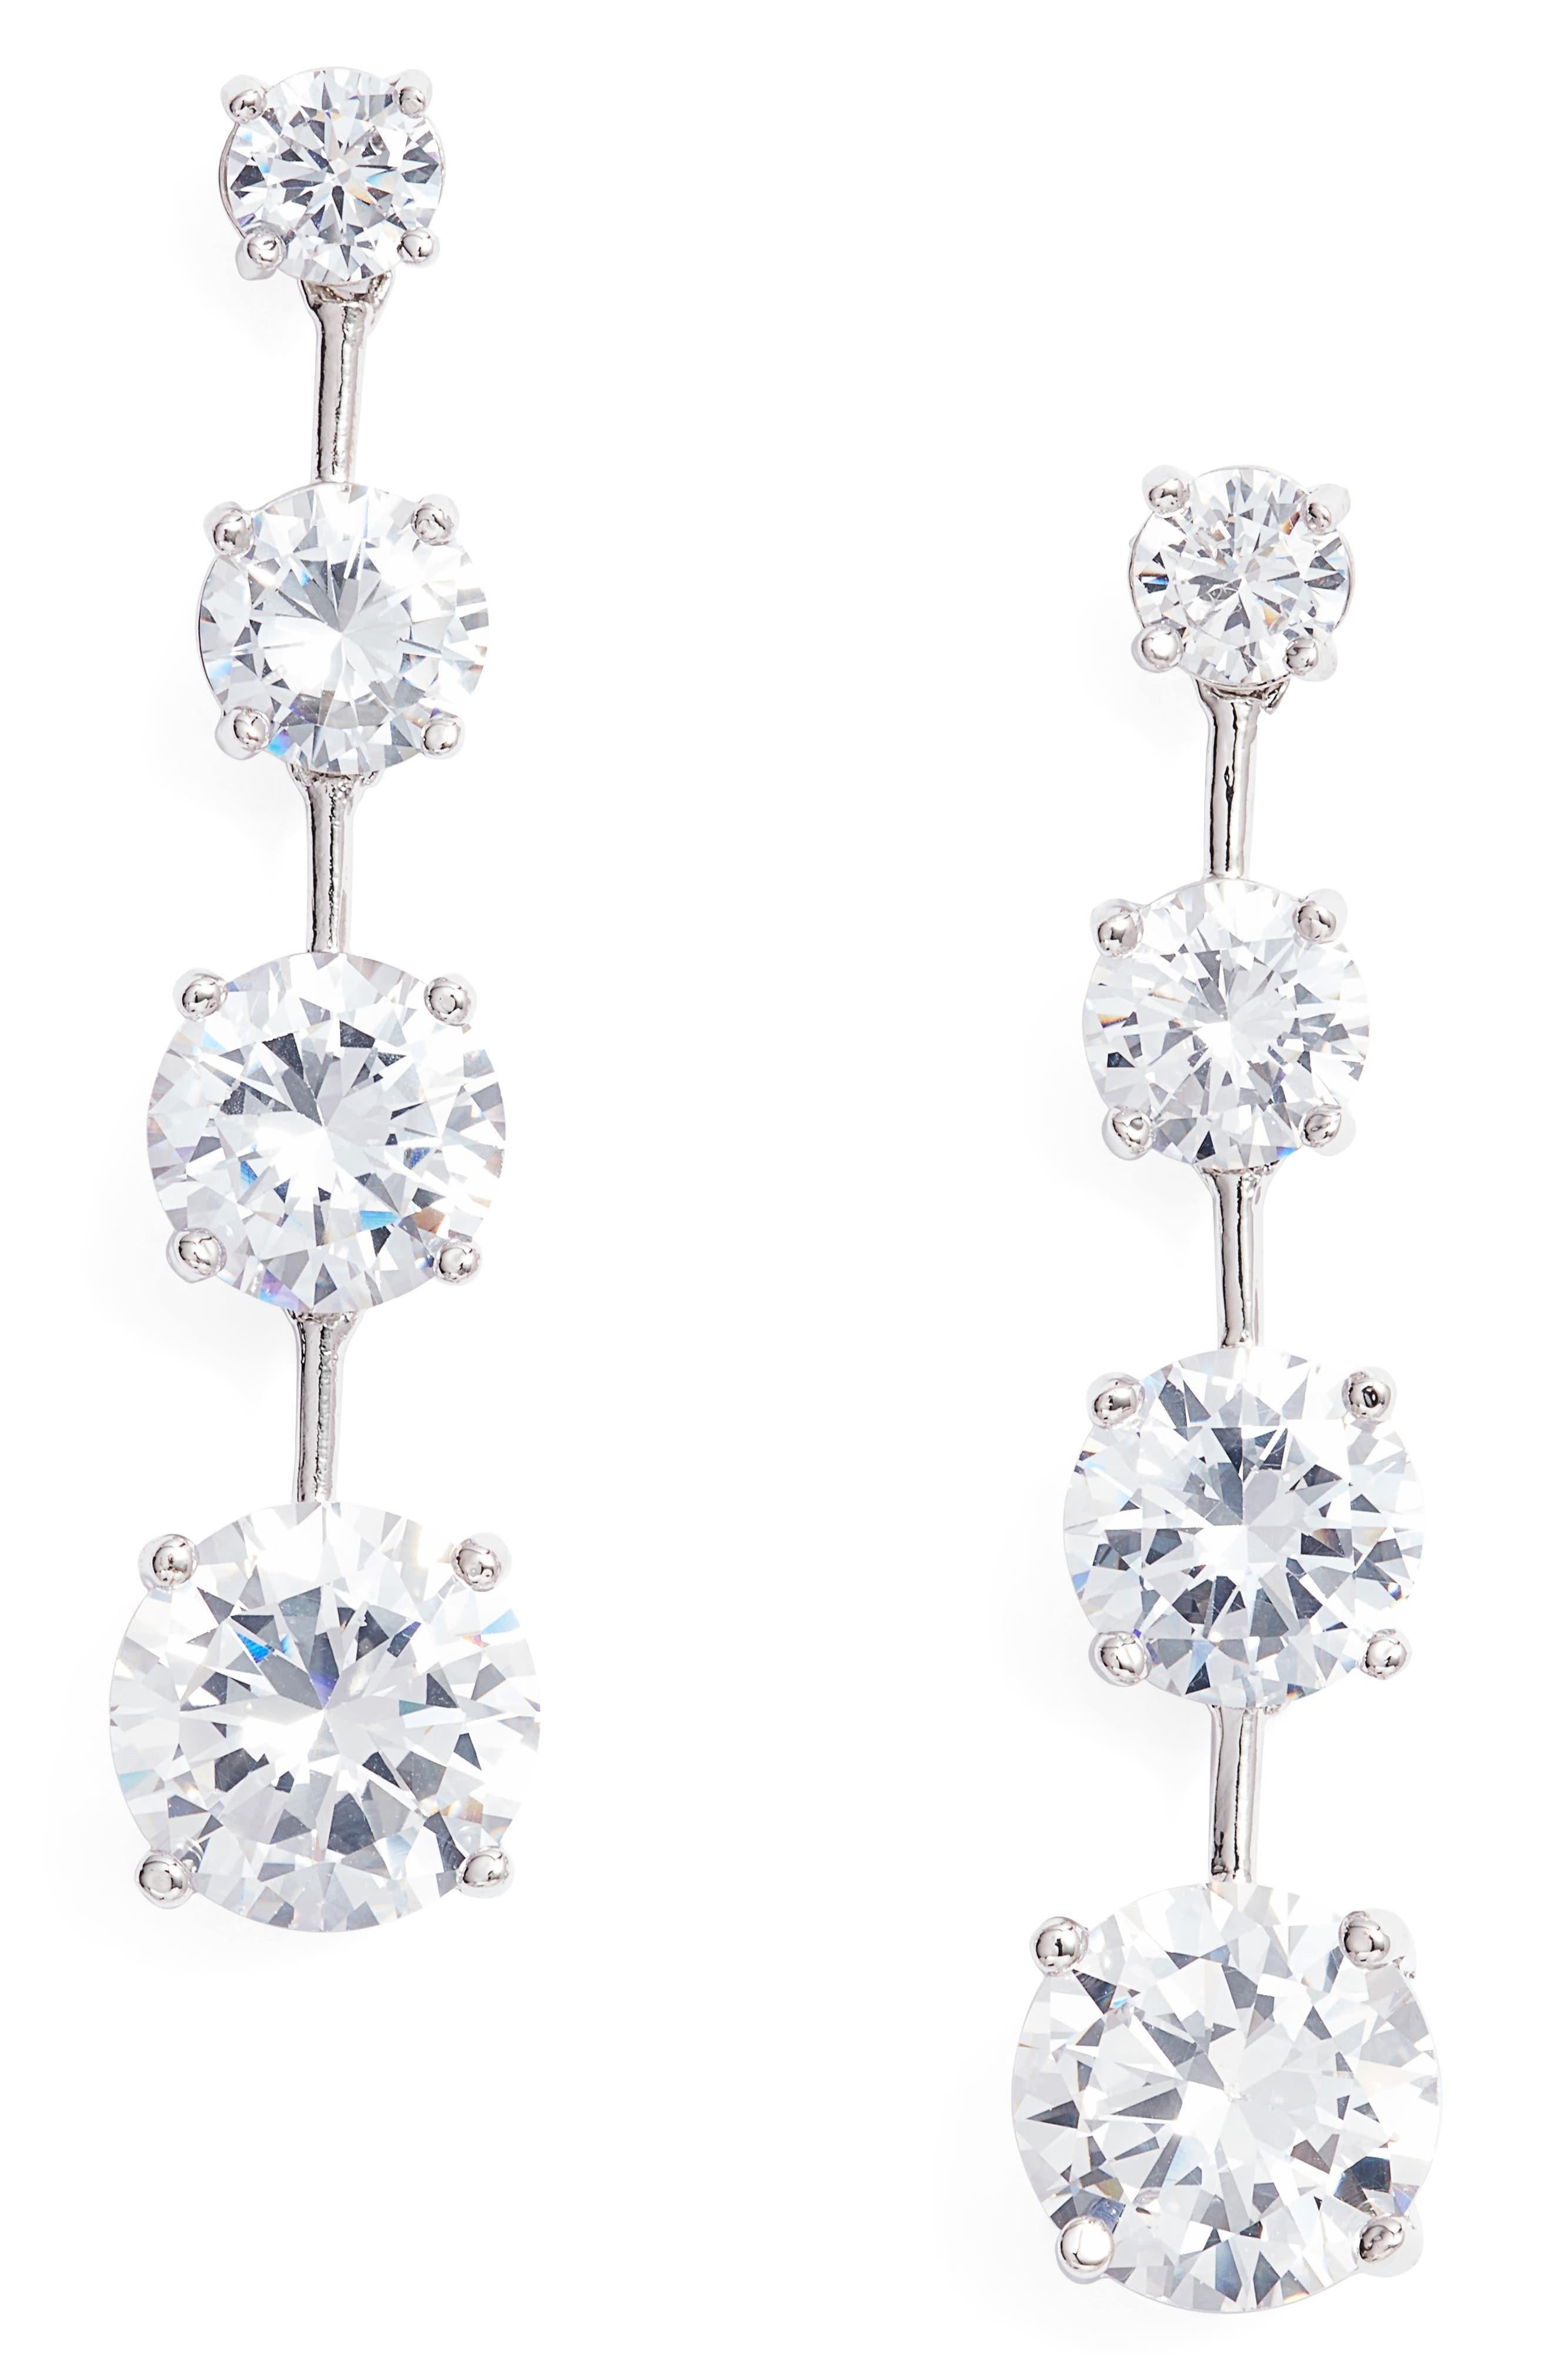 Graduated Cubic Zirconia Linear Drop Earrings,                         Main,                         color, Silver/ White Cz